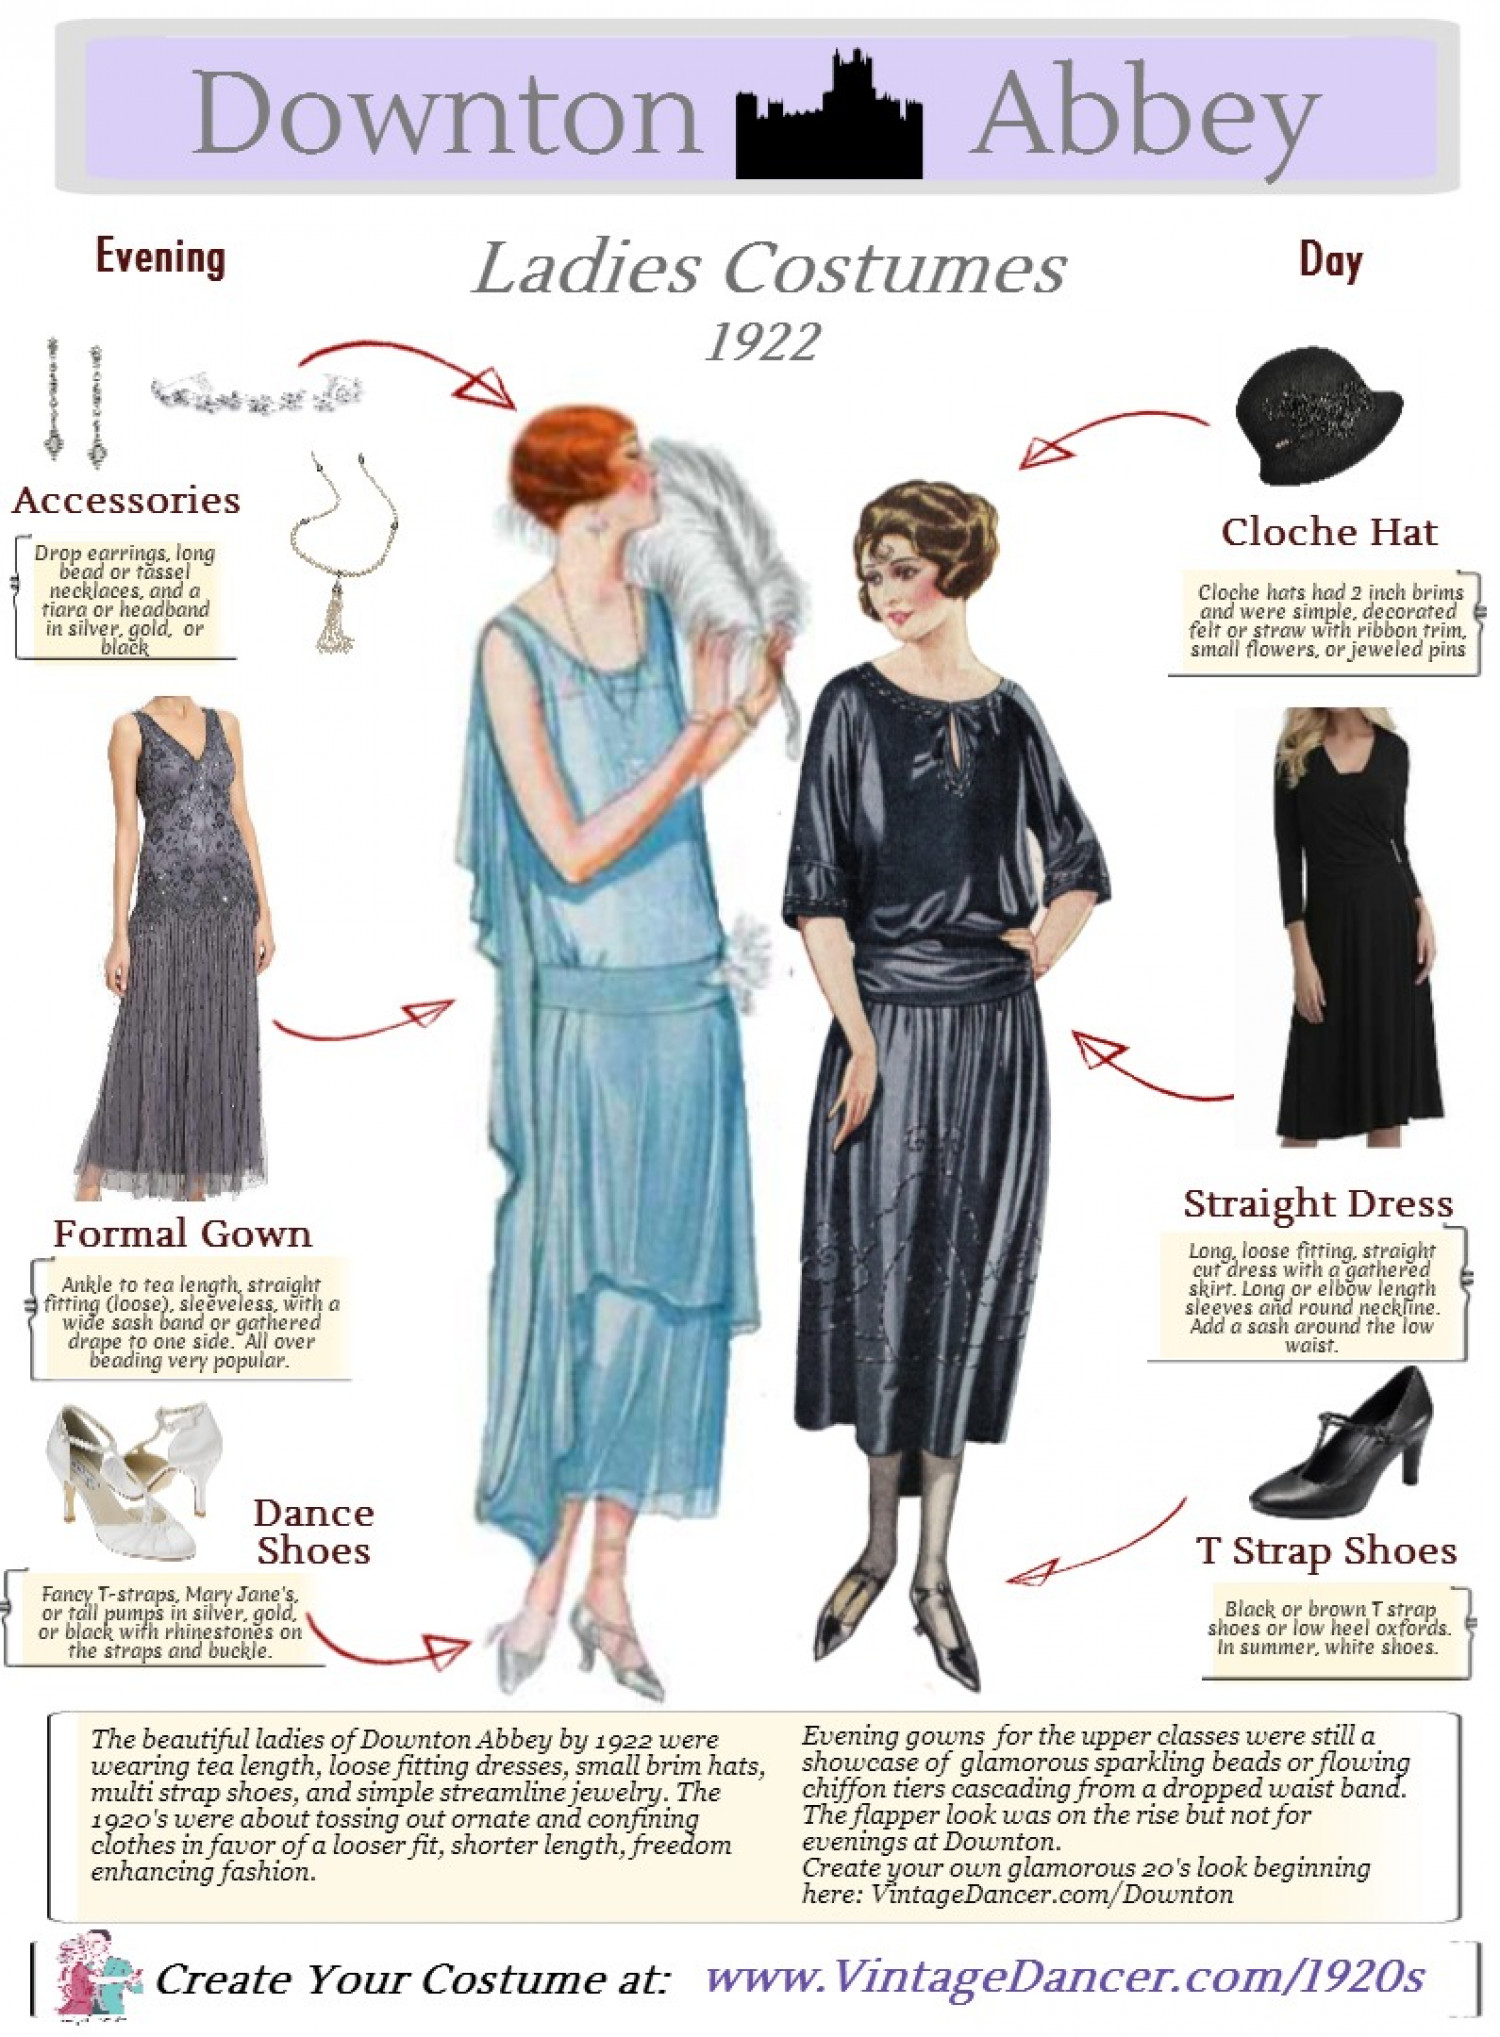 Downton Abbey Costumes for Ladies Infographic